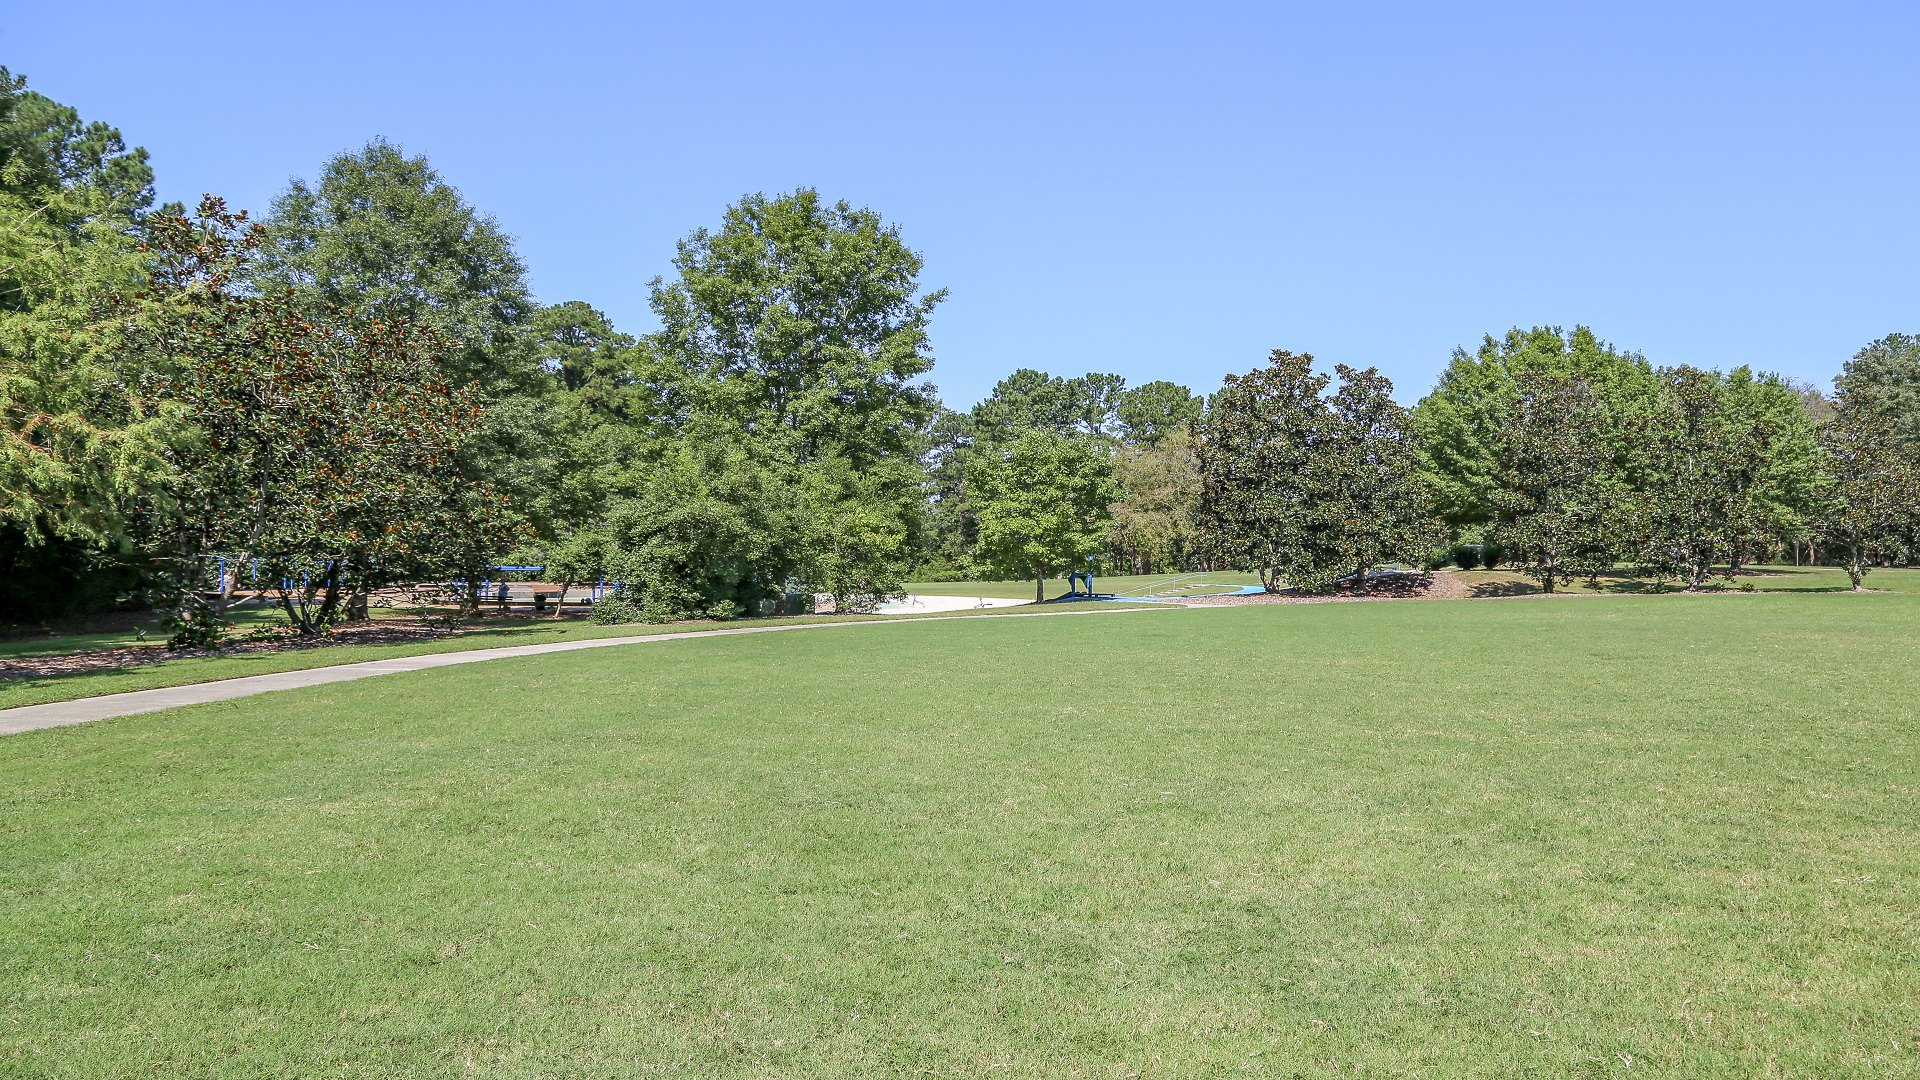 A large open space located next to the playground